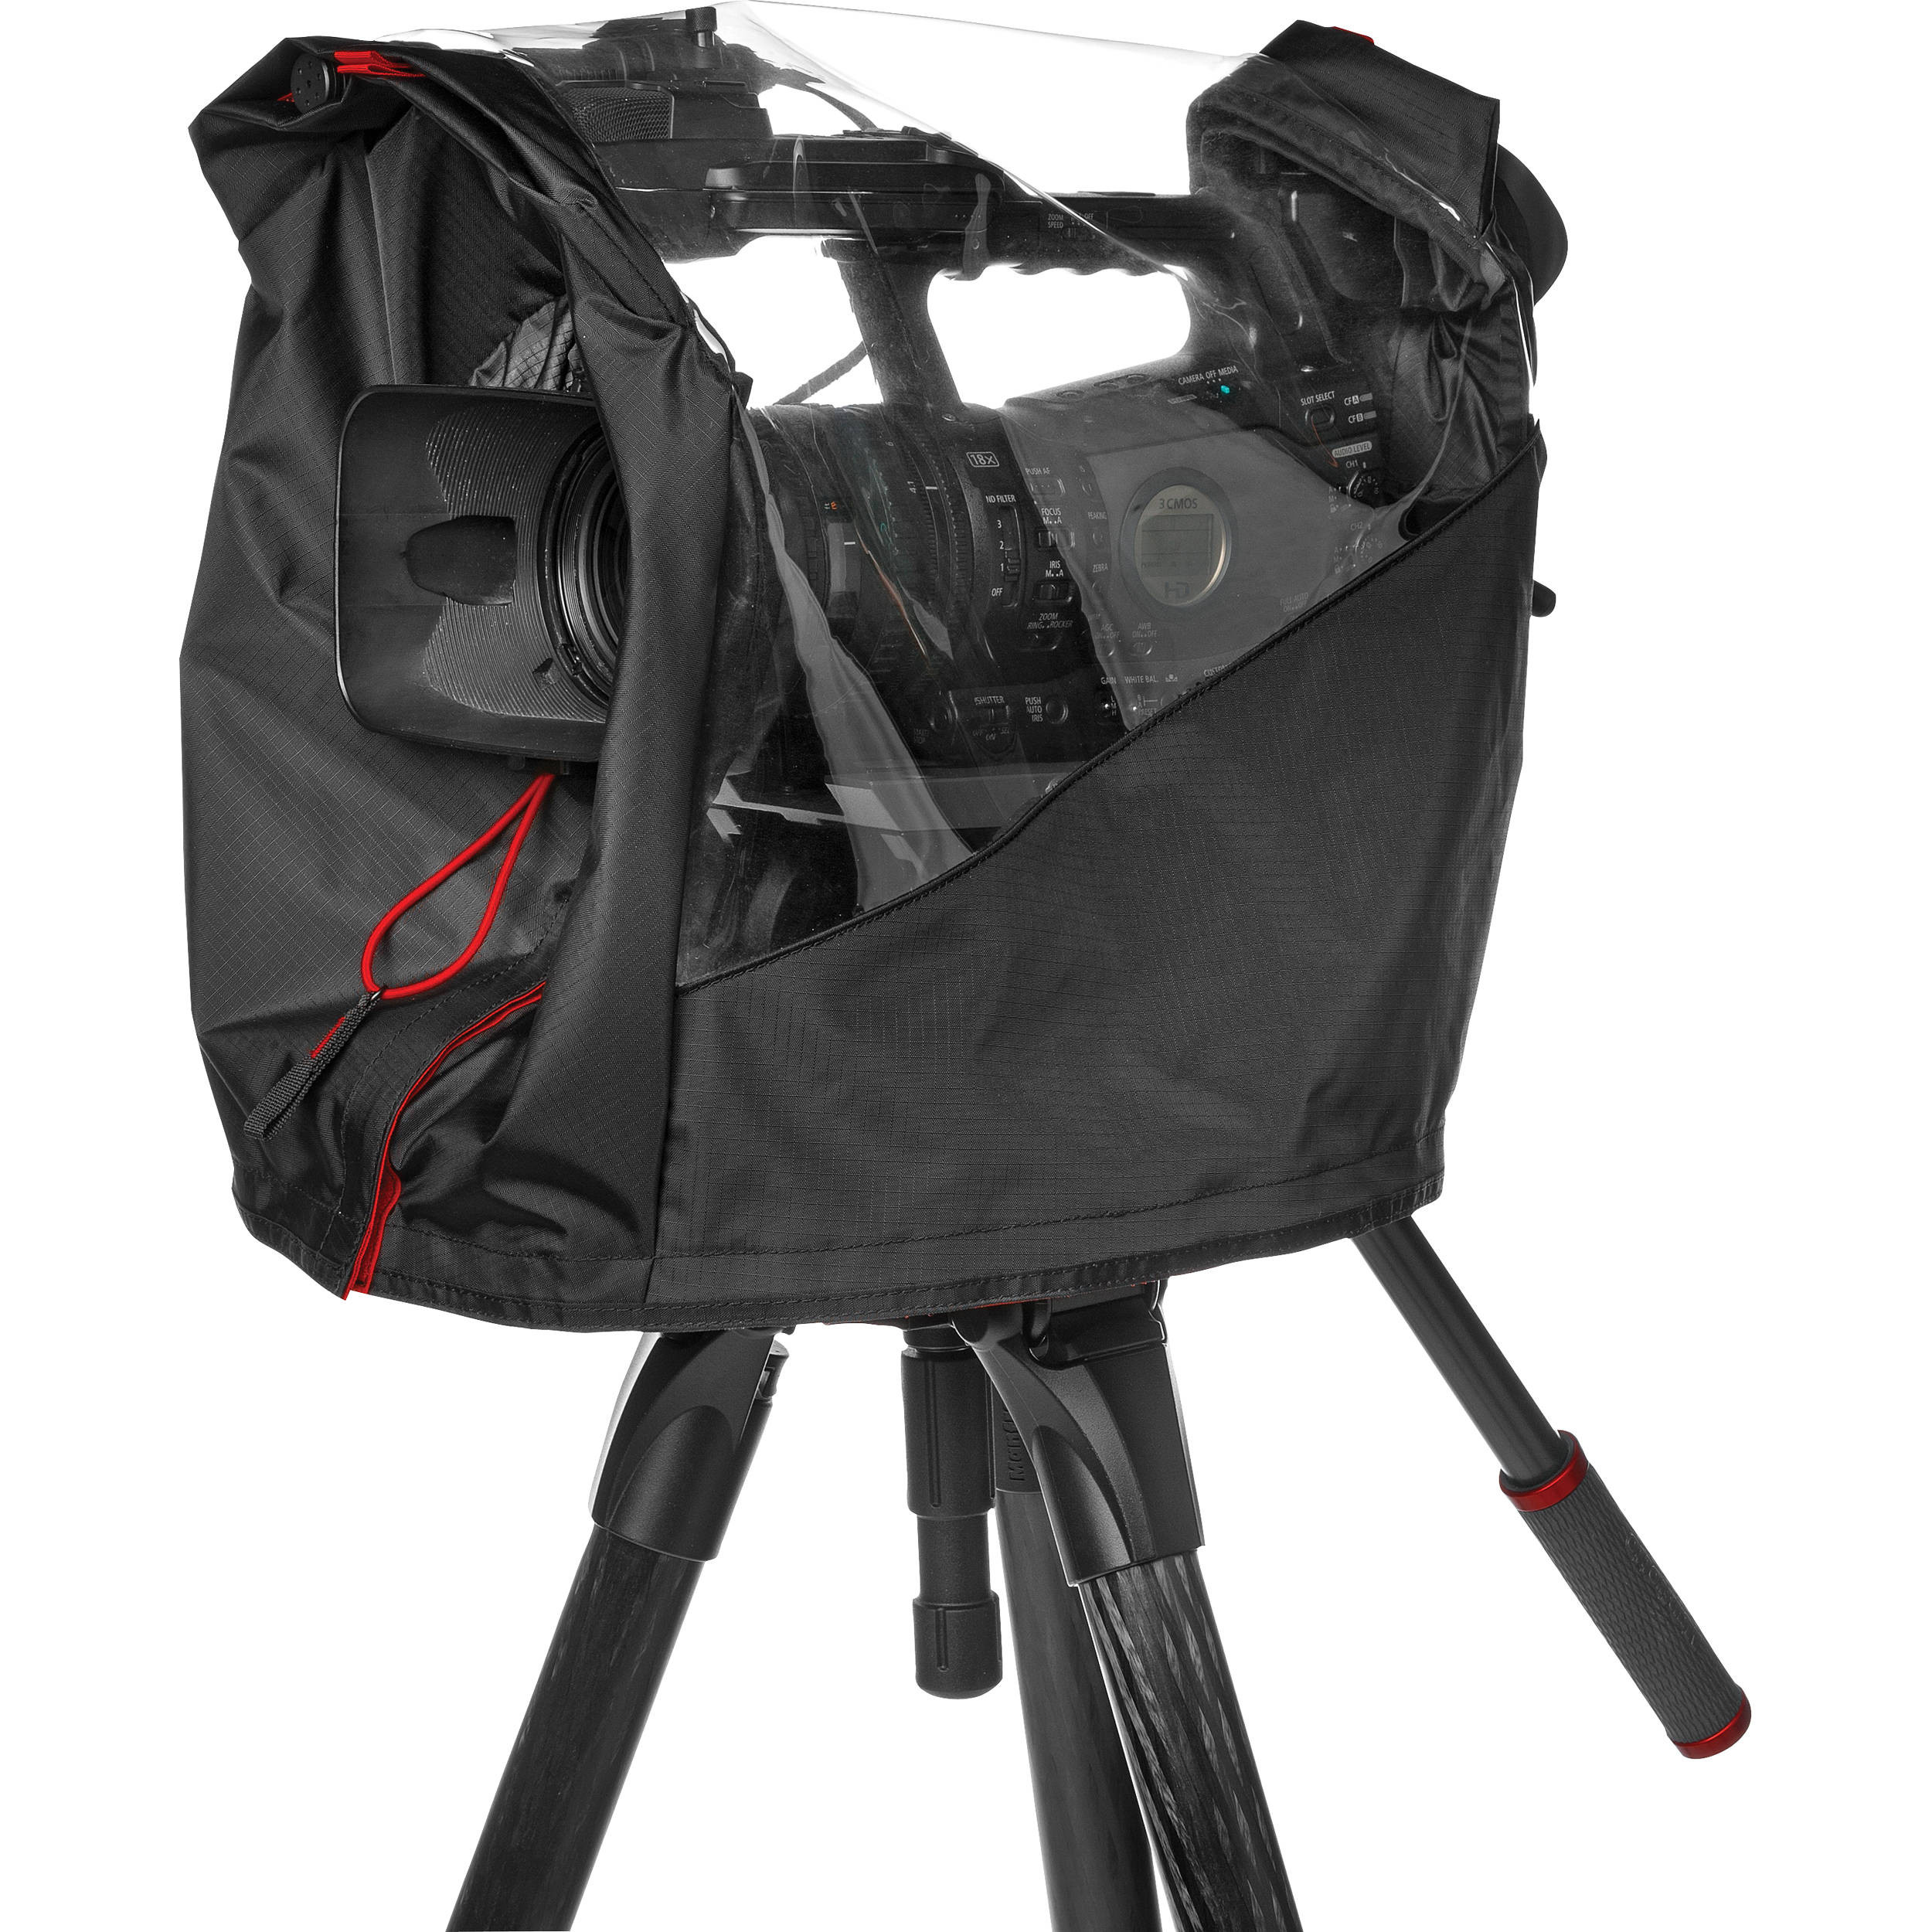 Housse pluie pro pour cam scope crc 12 pl gosselin photo for Housse camescope